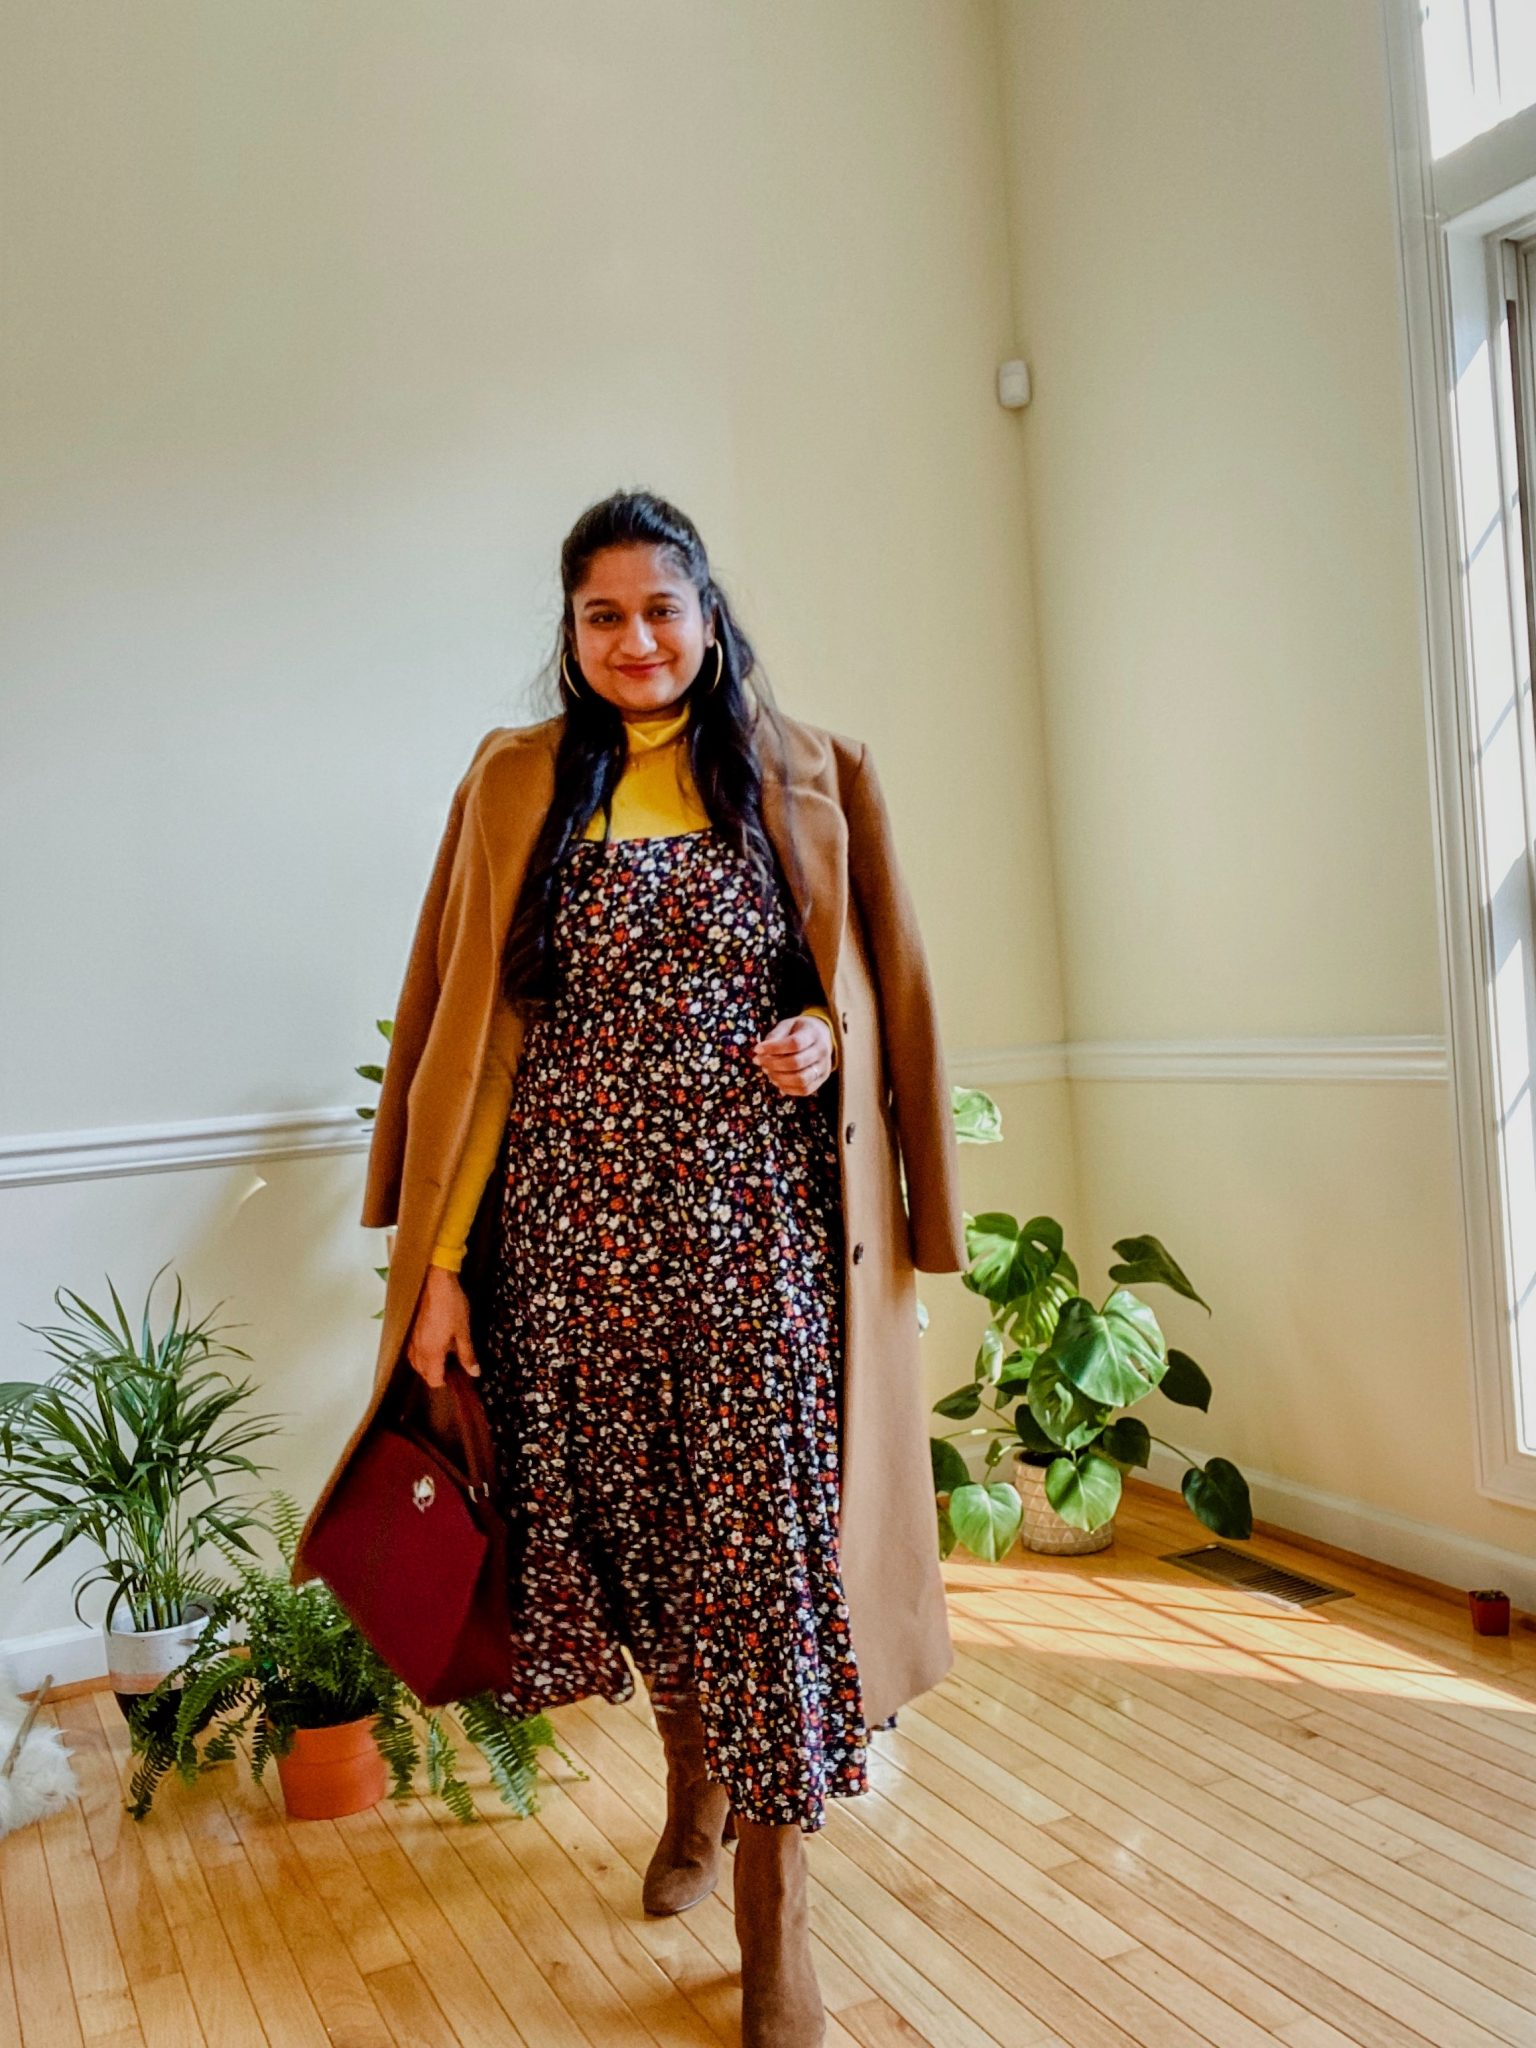 Wearing Ditsy Floral Sleeveless Tiered Midi Dress, Yellow turtleneck sweater, J.Crew Willa suede ankle boots,And other stories camel A-Line Wool Blend Belted Coat 1 |Summer Dresses by popular Maryland modest fashion blog, Dreaming Loud: image of a woman wearing a Know One Cares Ditsy Floral Sleeveless Tiered Midi Dress, J. Crew Tissue turtleneck, & Other Stories Oversized Alpaca Blend Coat, Amazon Kate Spade New York Romy Medium Satchel, and Madewell Oversized Hoop Earrings.